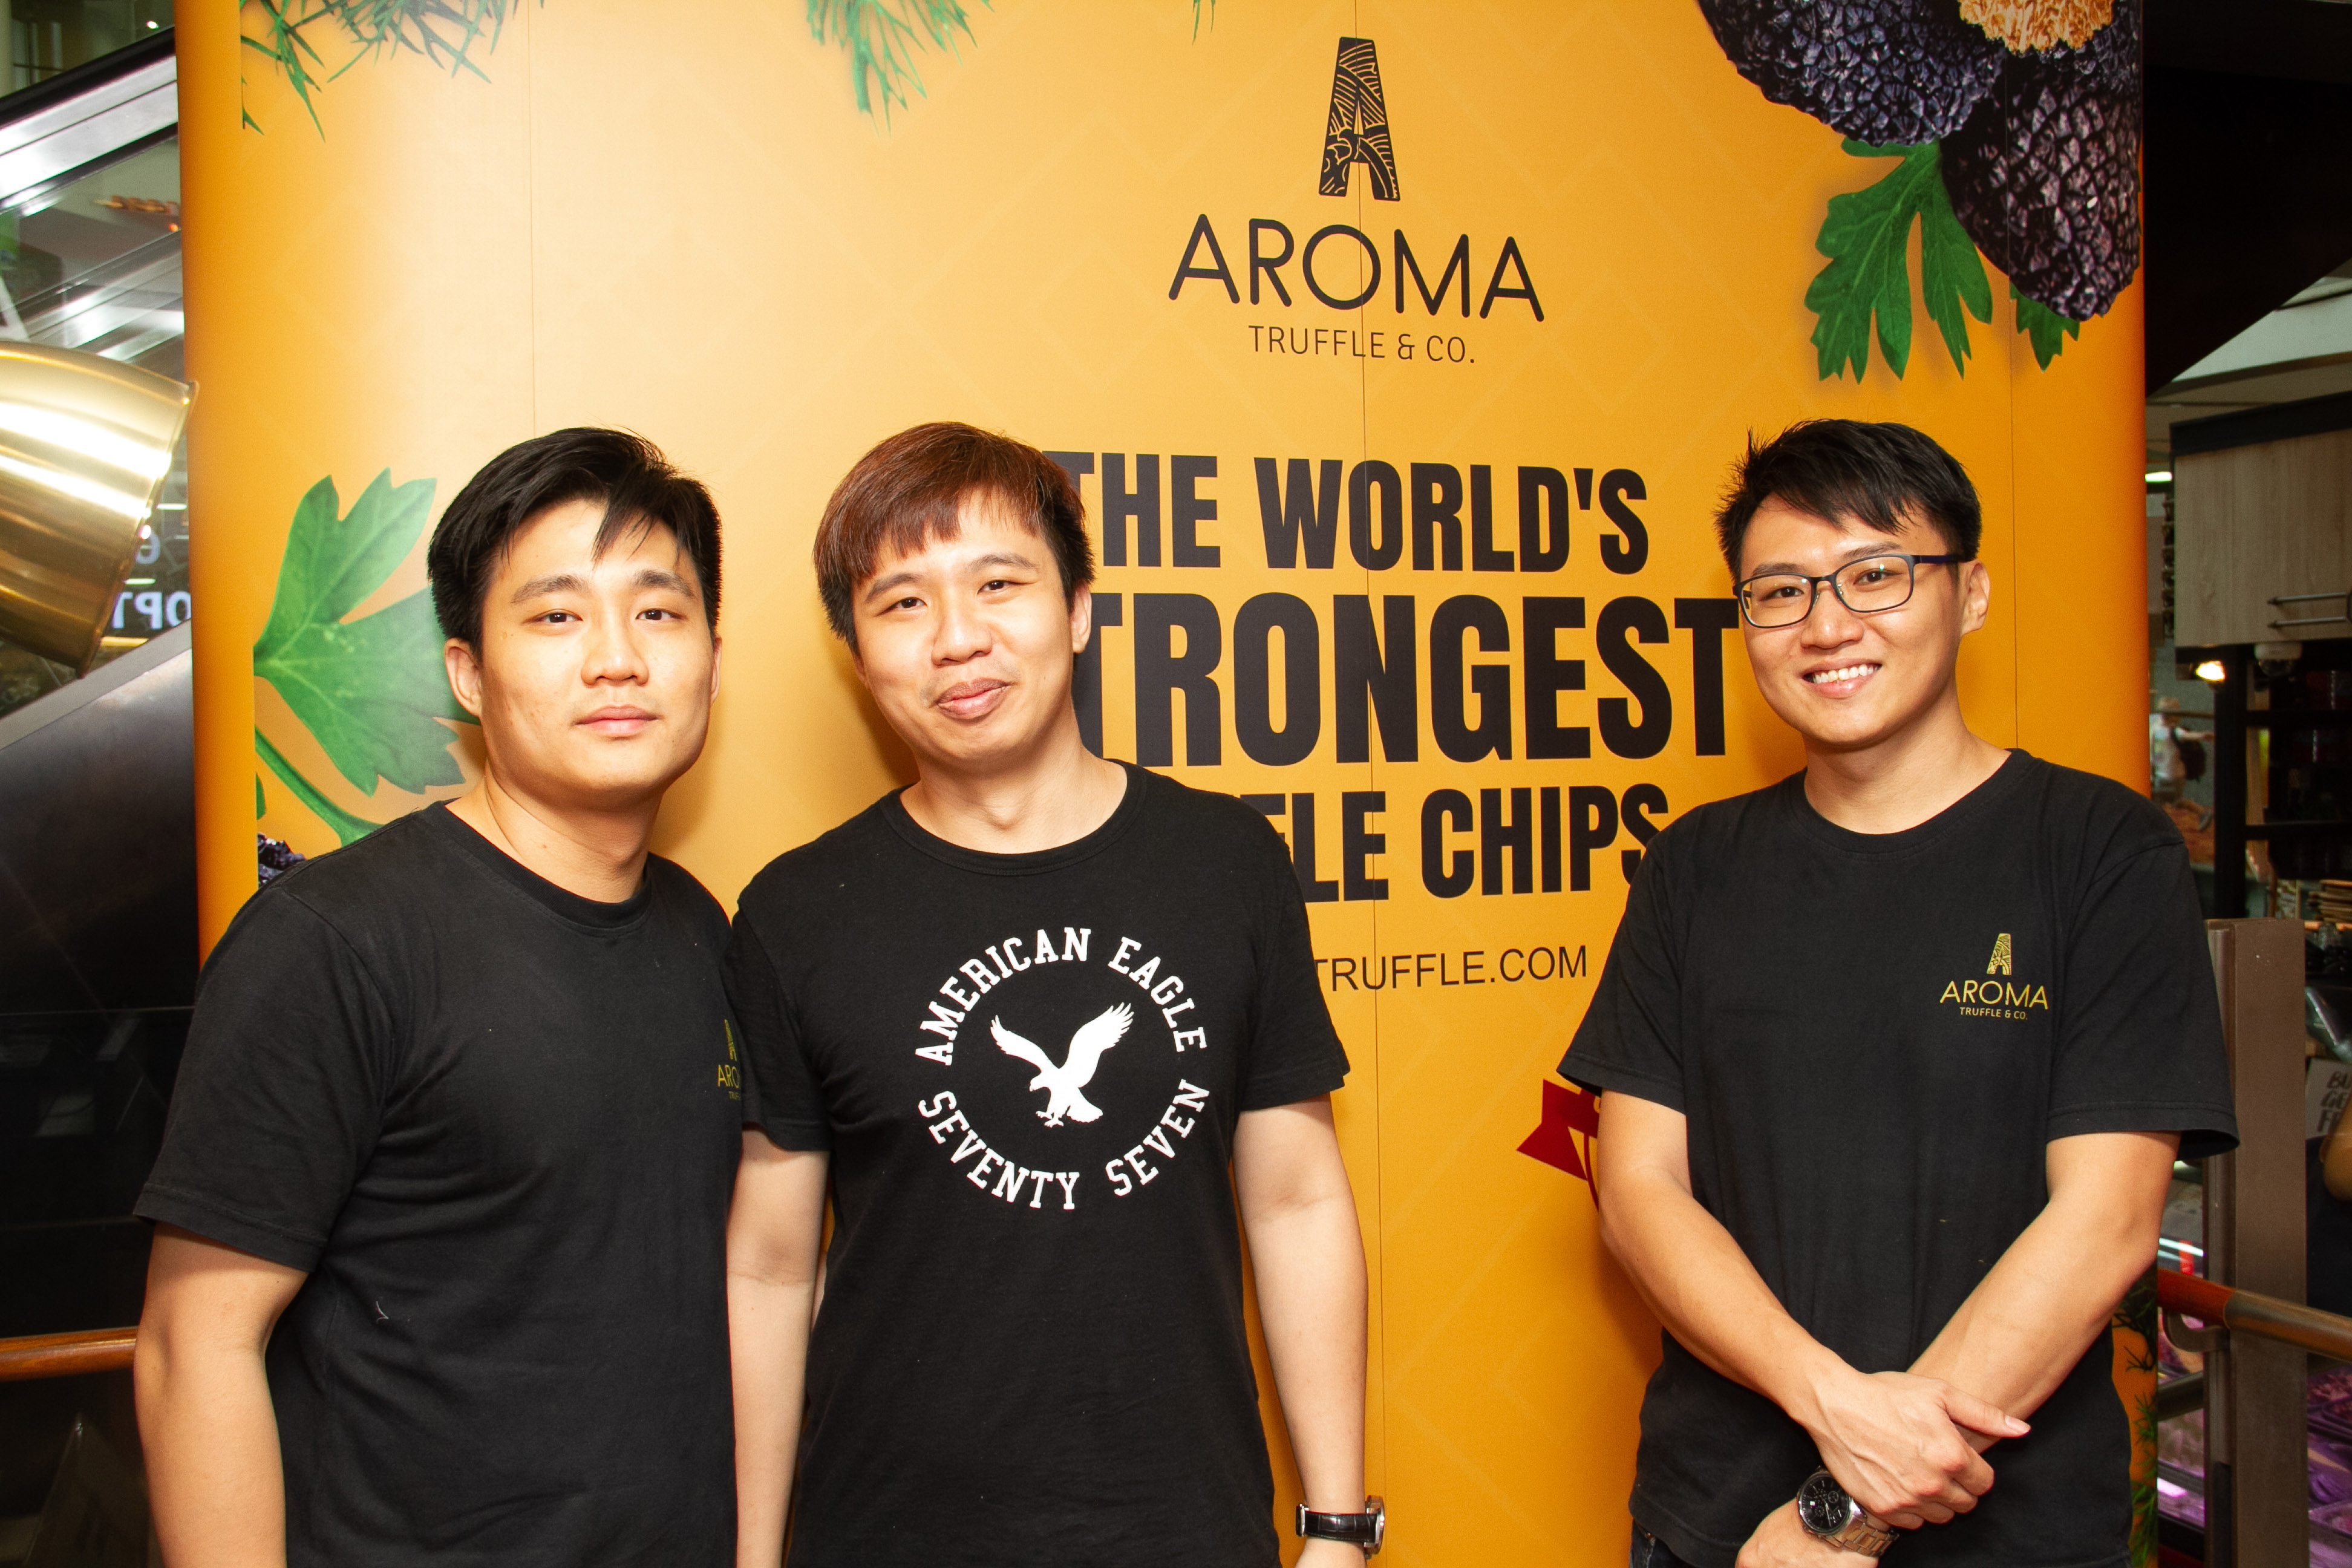 Aroma Truffle - Singapore's first truffle chips boutique arrives at Chinatown point - Alvinology